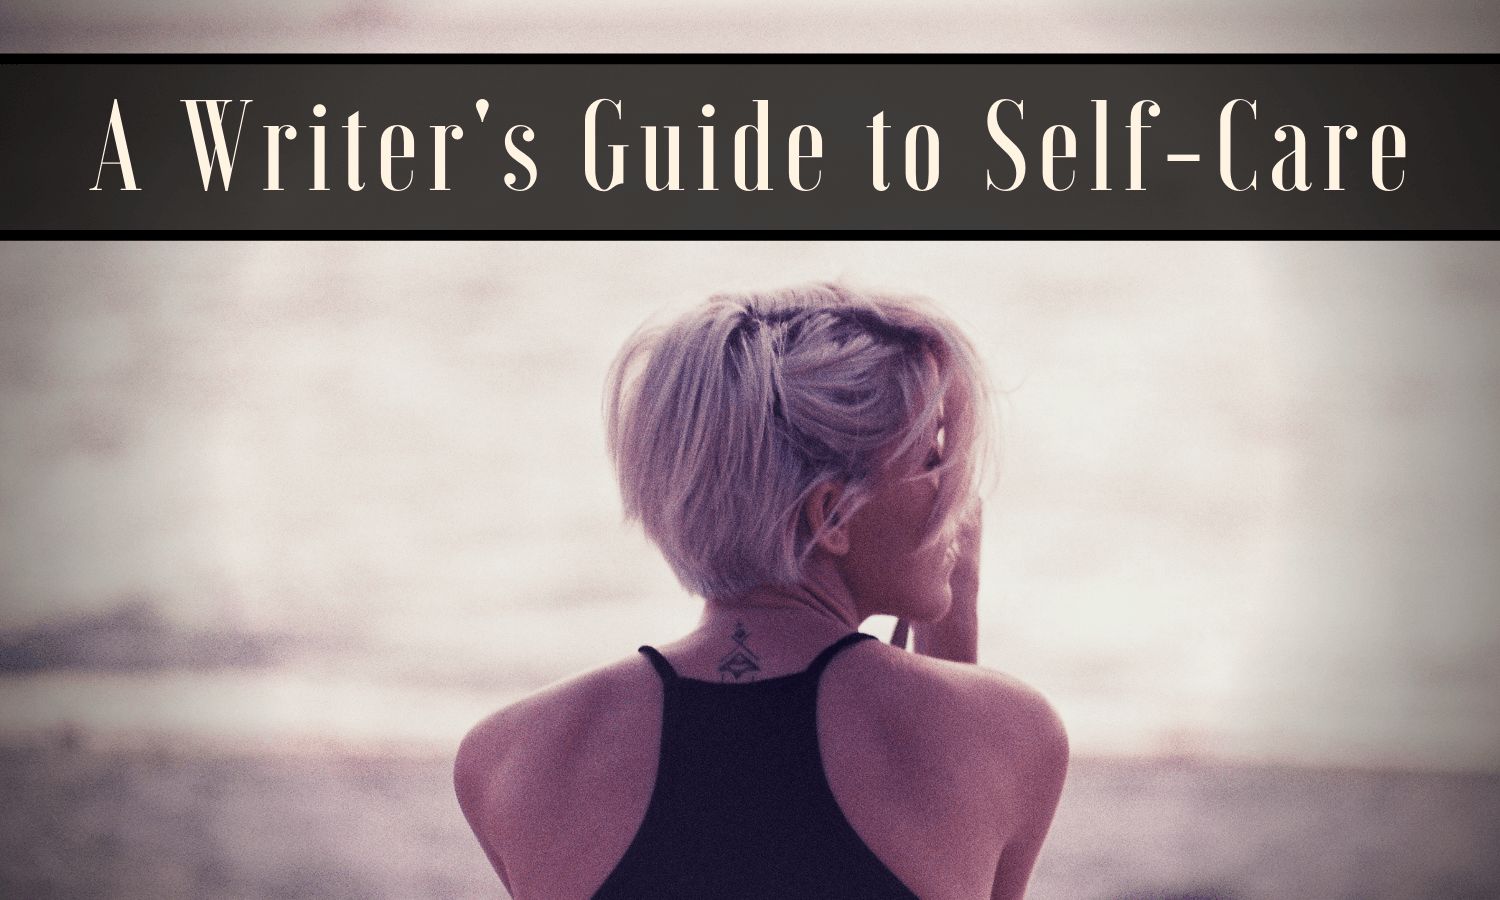 A Writer's Guide to Self-Care